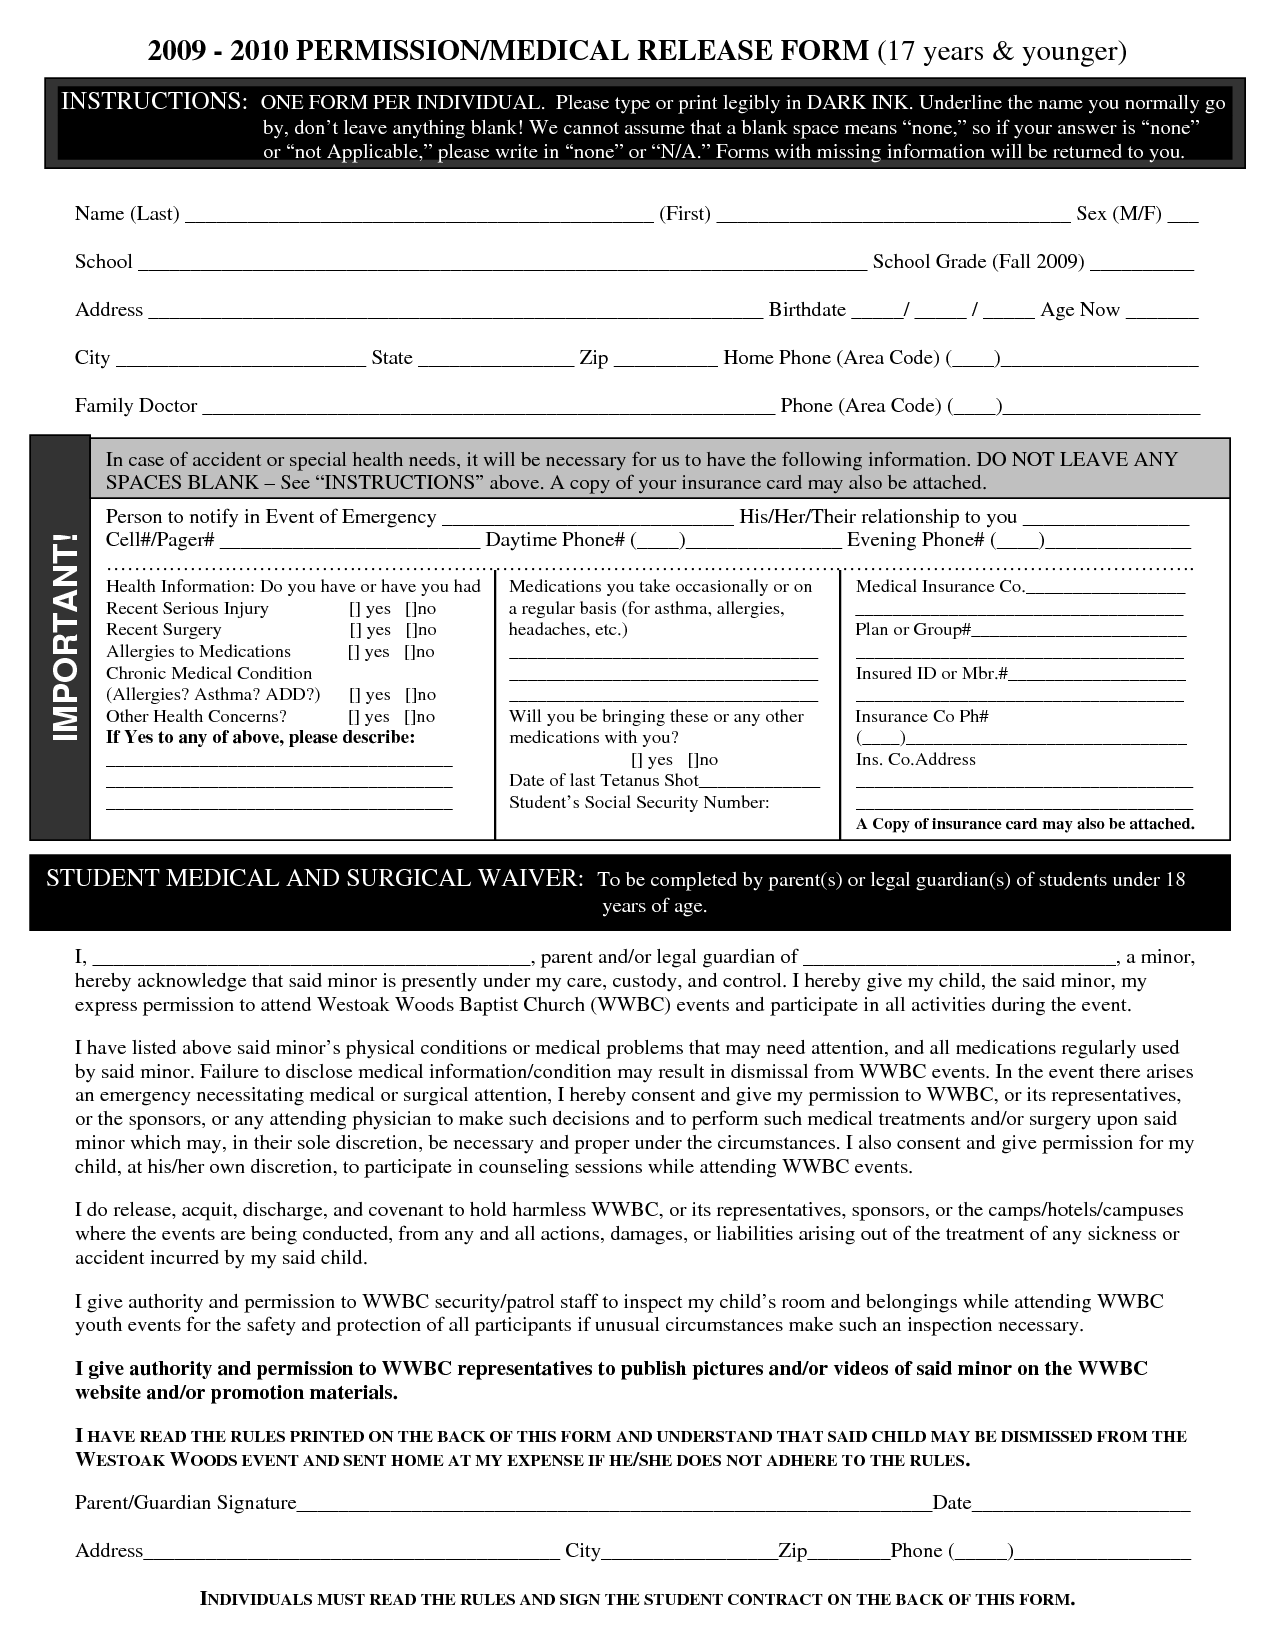 Doctor Hospital Release Form Excuse From Work Pdf  Things